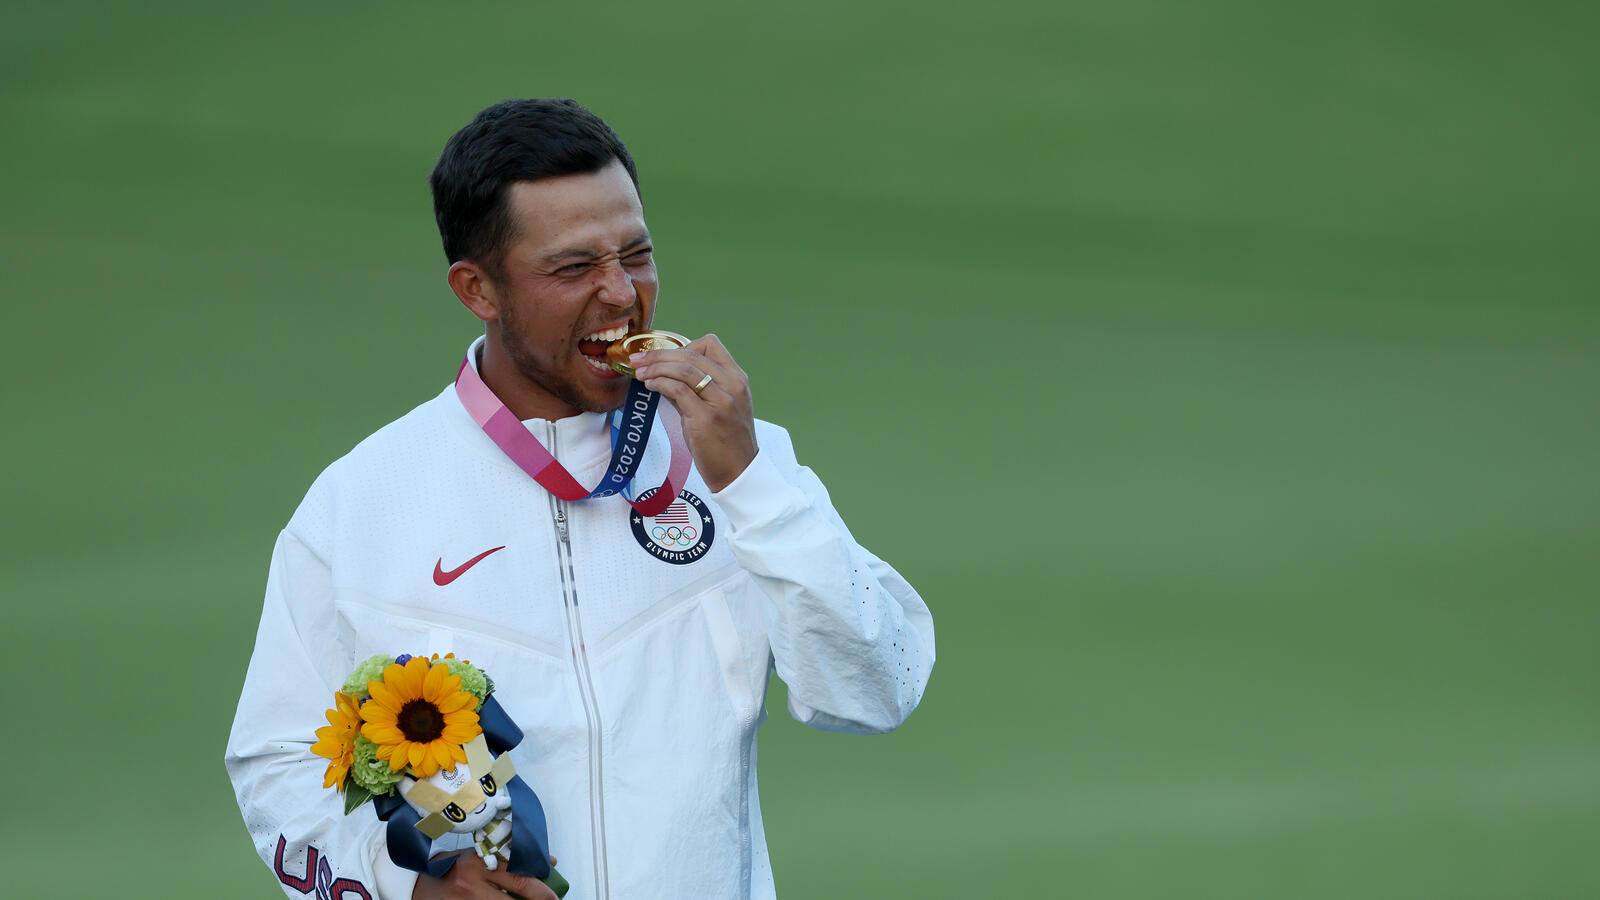 """Xander Schauffele """"Only Way To Make This Happen Is To Believe In Yourself"""""""